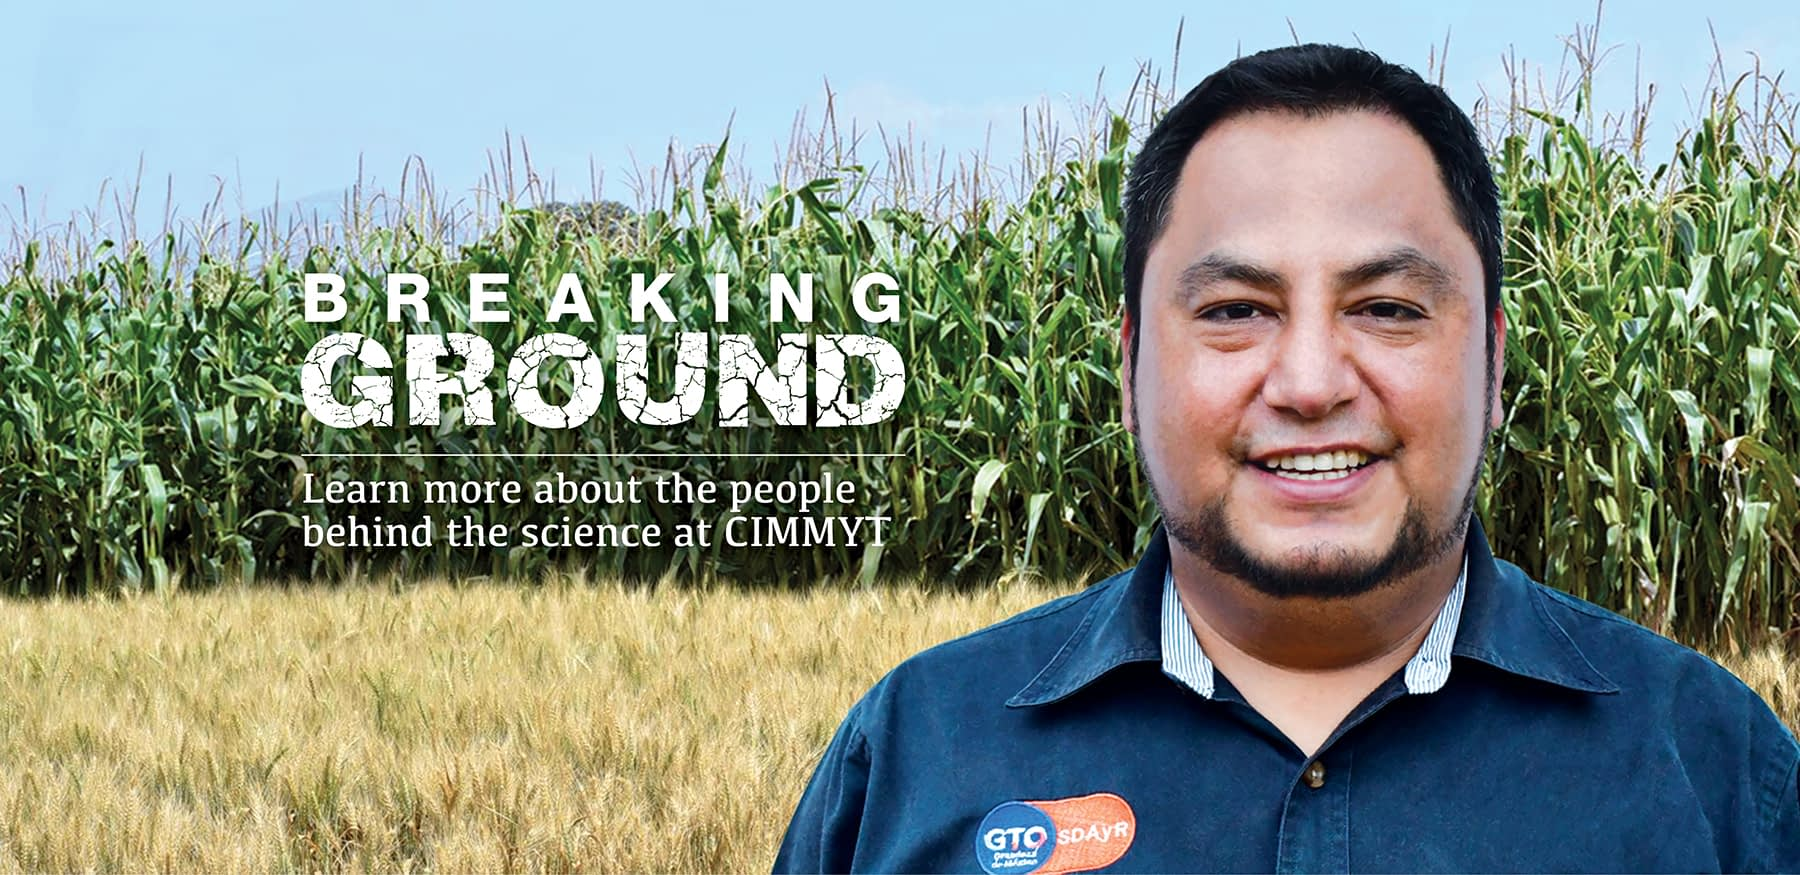 Ortiz Hernández, manager of CIMMYT's innovation hub in Bajío, Mexico. (Photo: CIMMYT)